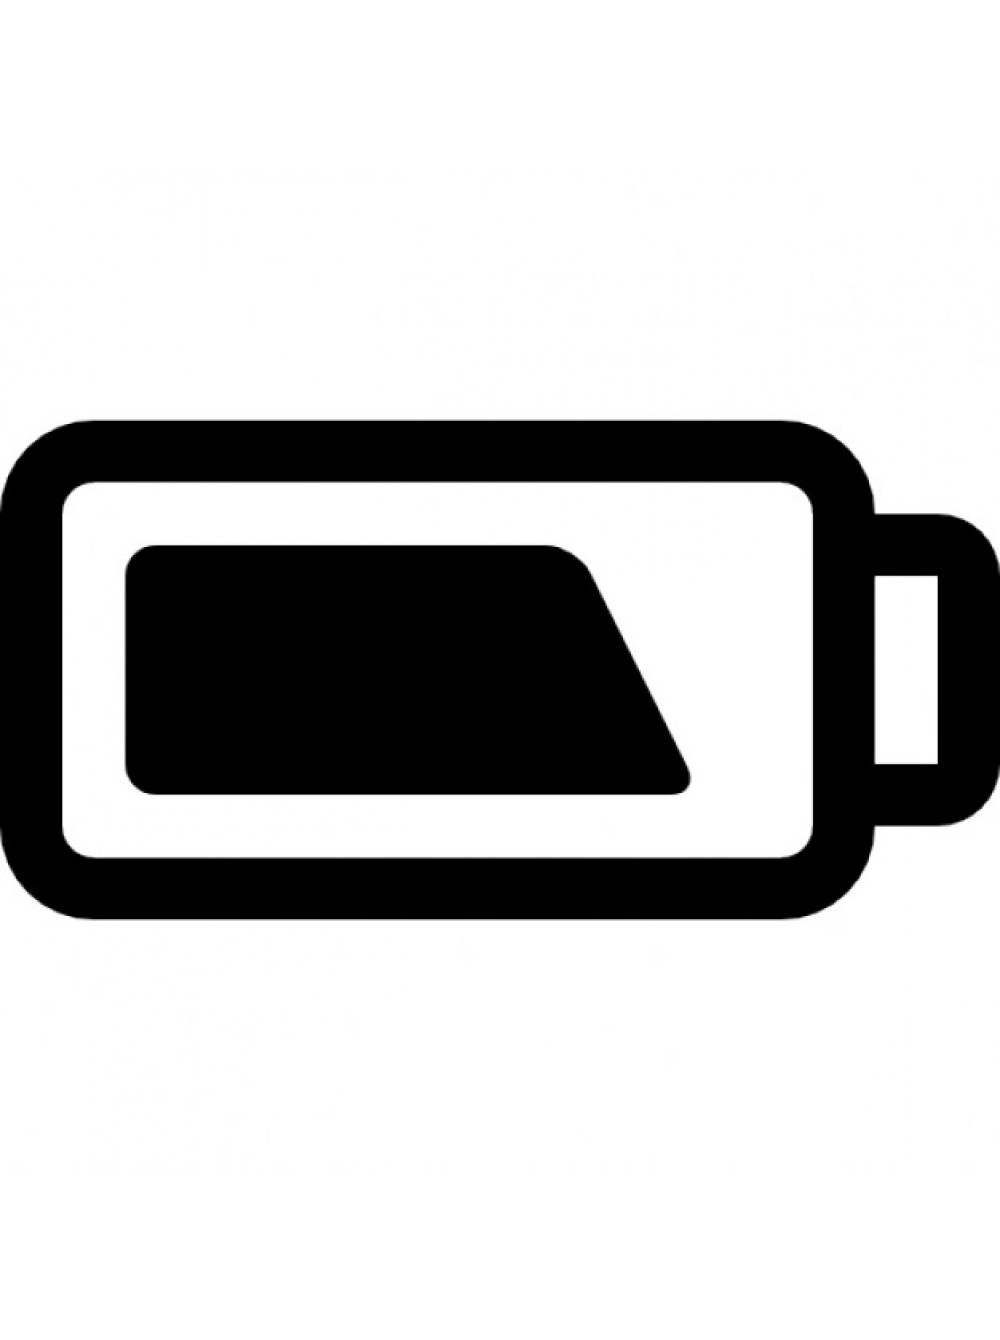 battery download full size im - 626×626